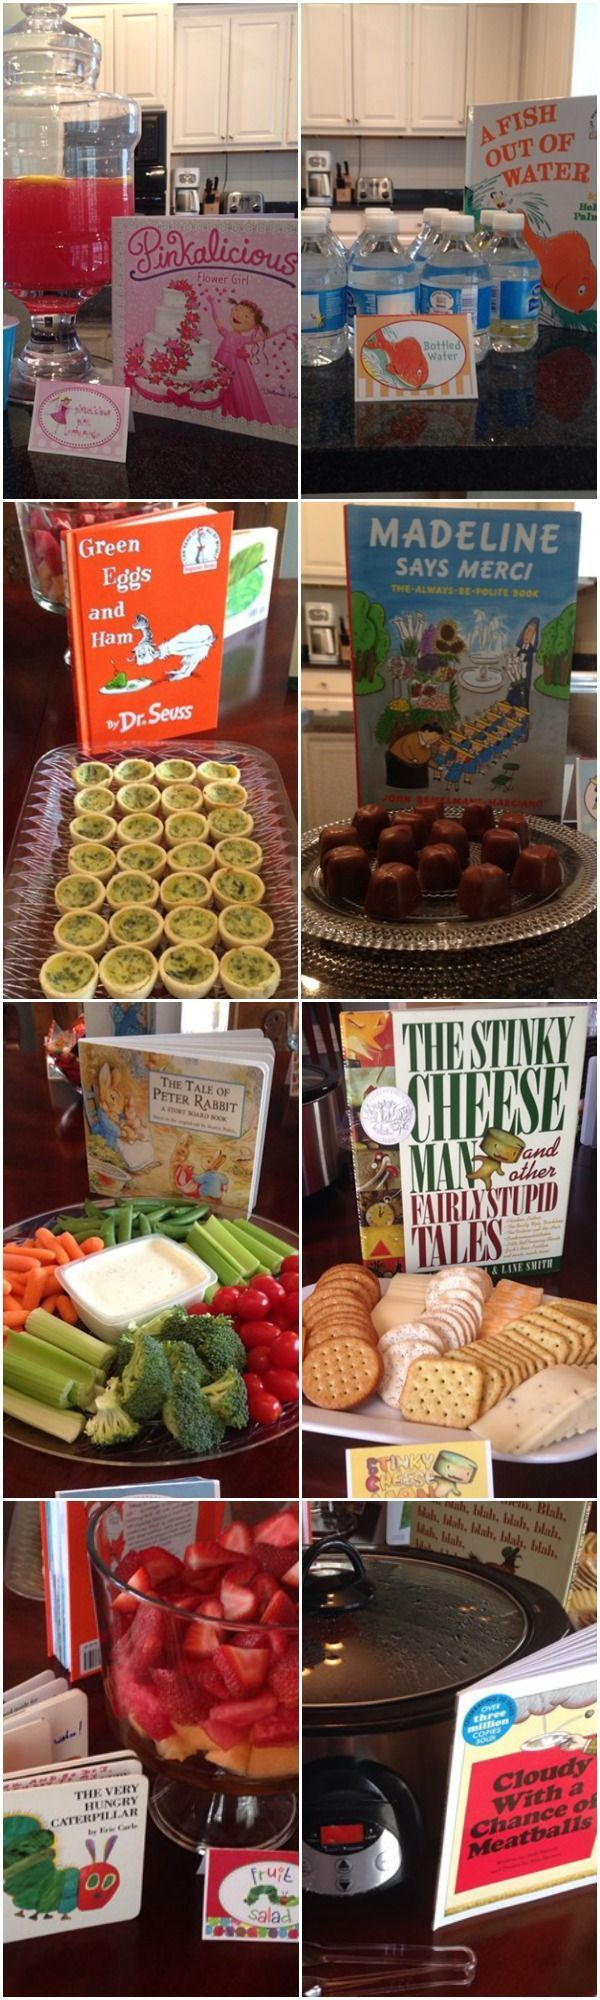 A Storybook Theme Sip & See - so many cute book & food pairing ideas! <3 www.weheartparties.com #babyshower